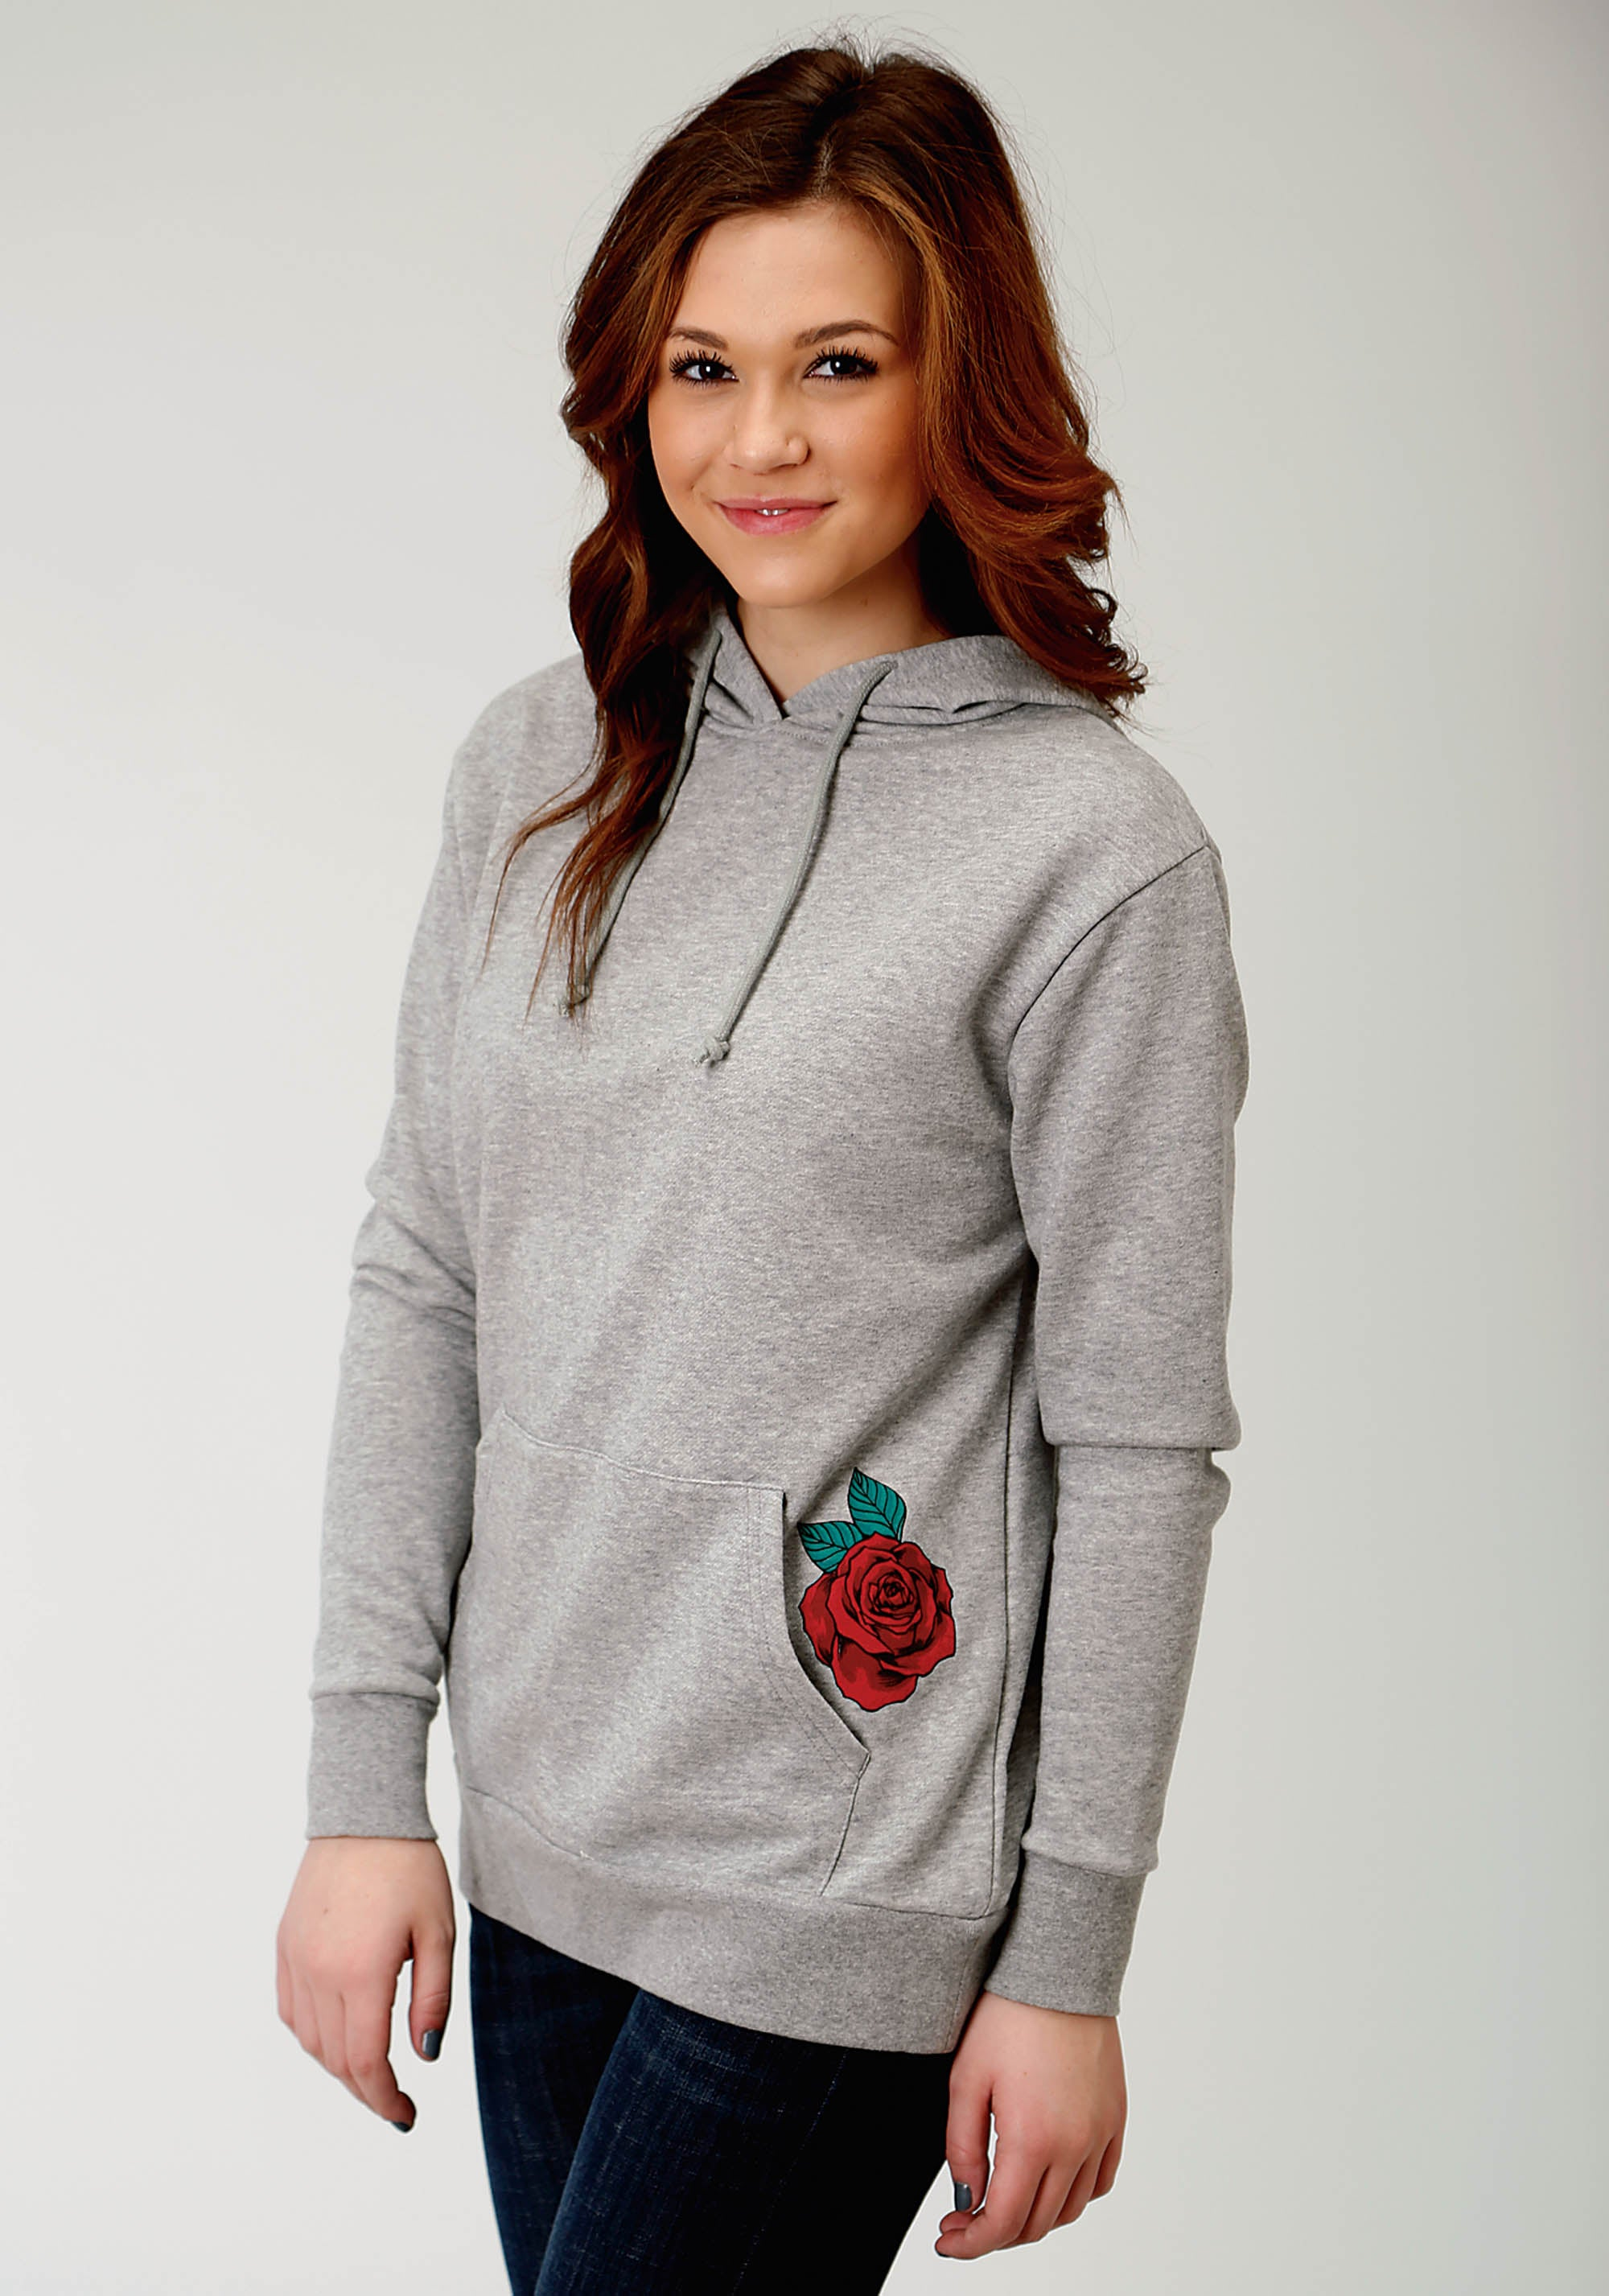 ROPER WOMENS GREY 2261 FRENCH TERRY HOODED SWEATSHIRT FIVE STAR COLLECTION- WINTER I LONG SLEEVE